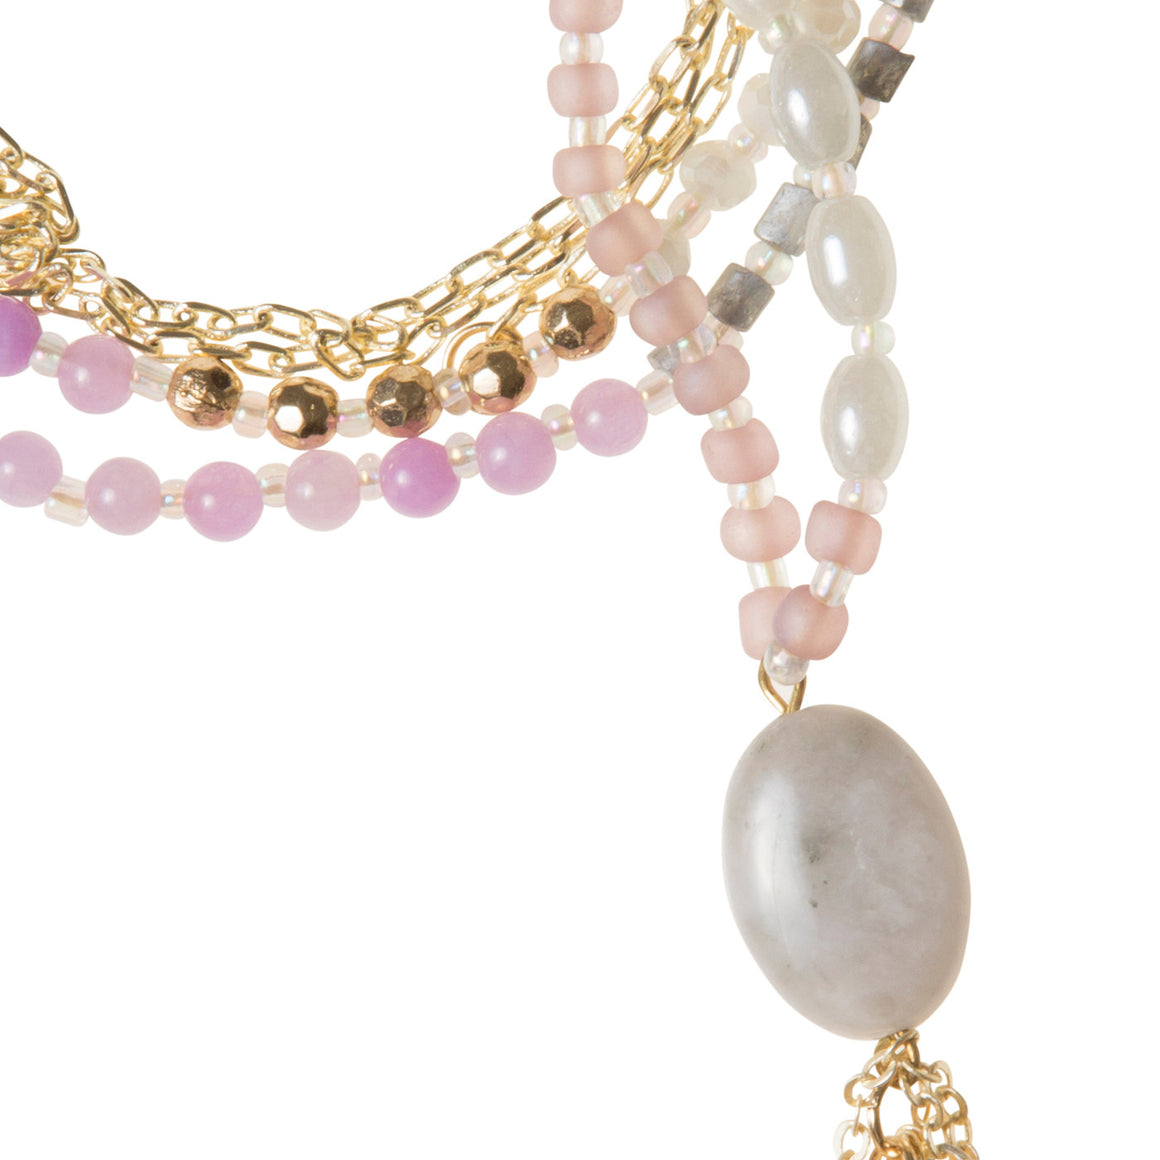 Daily Mala Necklace : lavender/gold